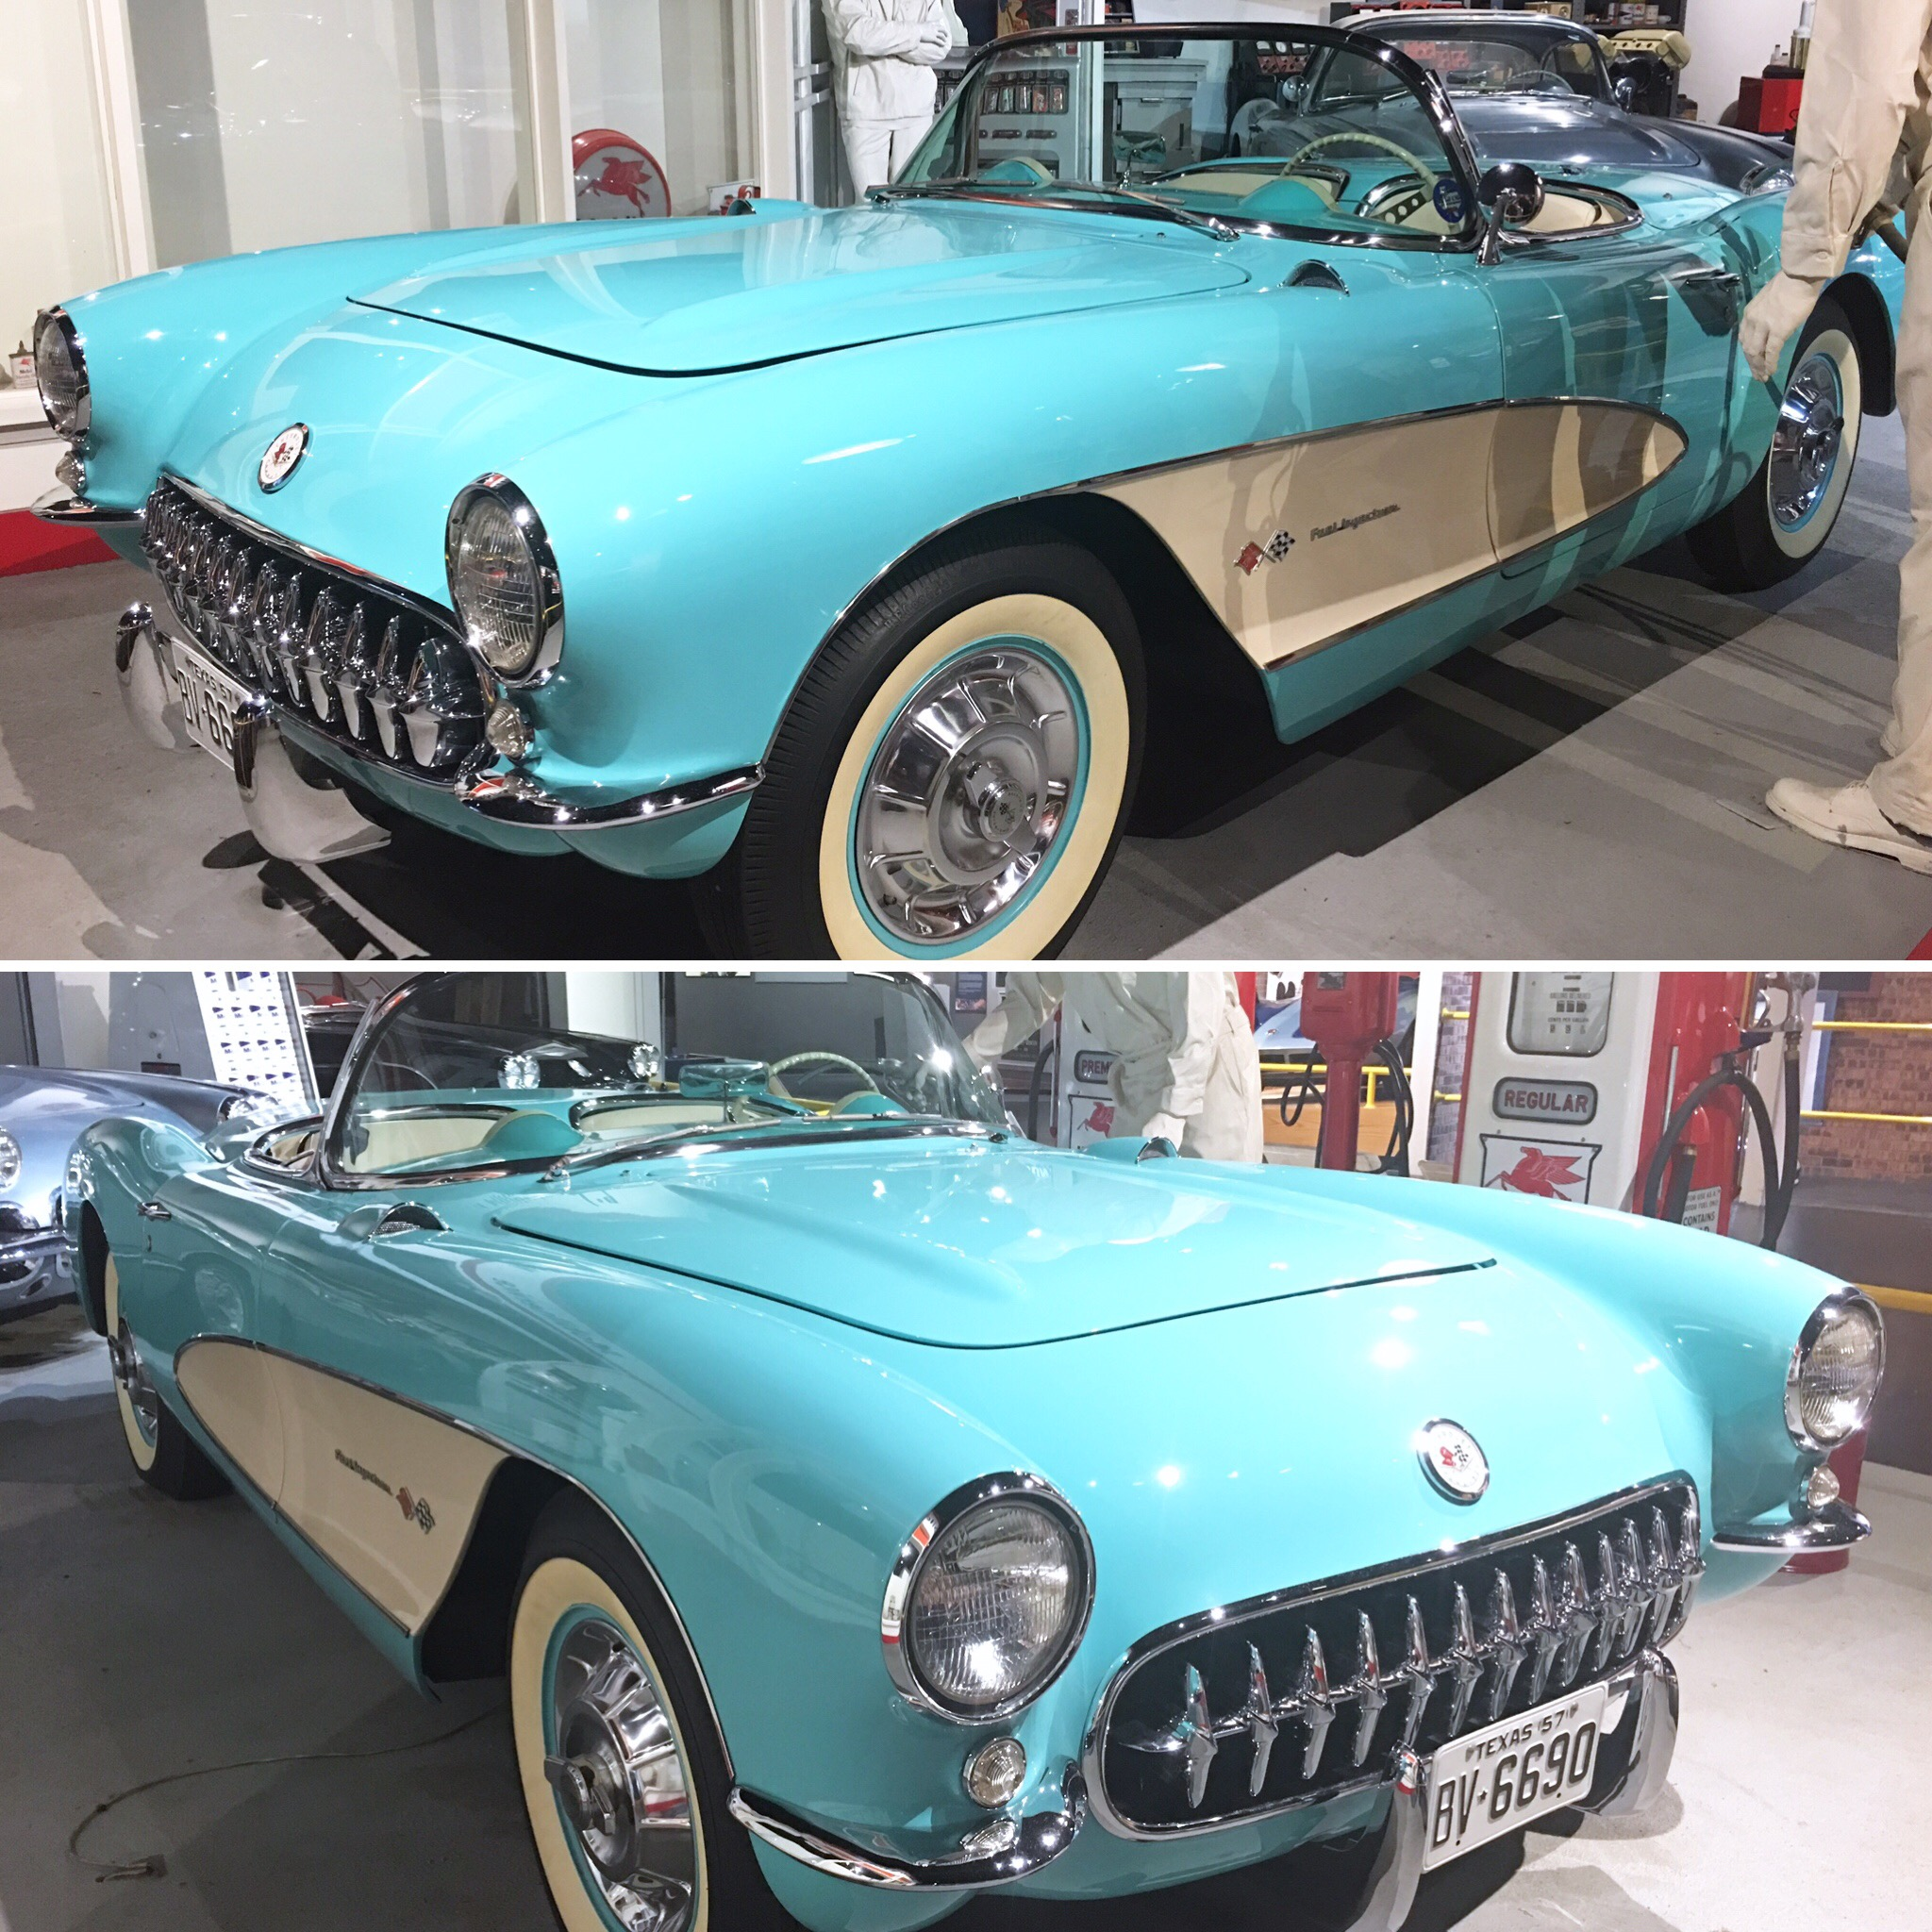 national corvette museum the vetetoe family. Cars Review. Best American Auto & Cars Review